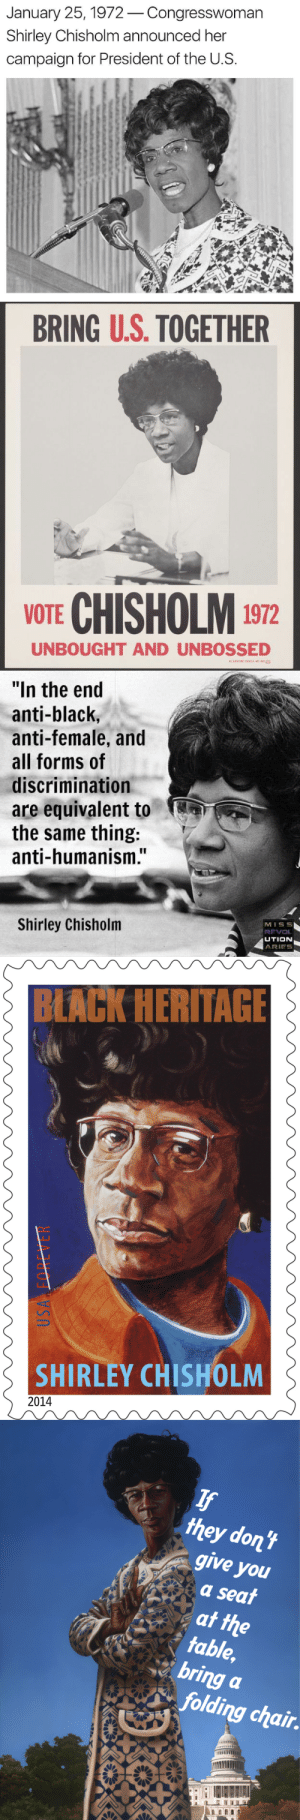 """humanism: January 25,1972Congresswoman  Shirley Chisholm announced her  campaign for President of the U.S.   BRING U.S. TOGETHER  e-  VOTE CHISHOLM 1972  UNBOUGHT AND UNBOSSED   """"In the end  anti-black,  anti-female, and  all forms of  discrimination  are equivalent to  the same thing:  anti-humanism.""""  Shirley Chisholm  MISS5  UTION  ARIES   BLACK HERITAGE  SHIRLEY CHISHOLM  2014   they dont  give you  a seai  table,  bring a  folding chair"""